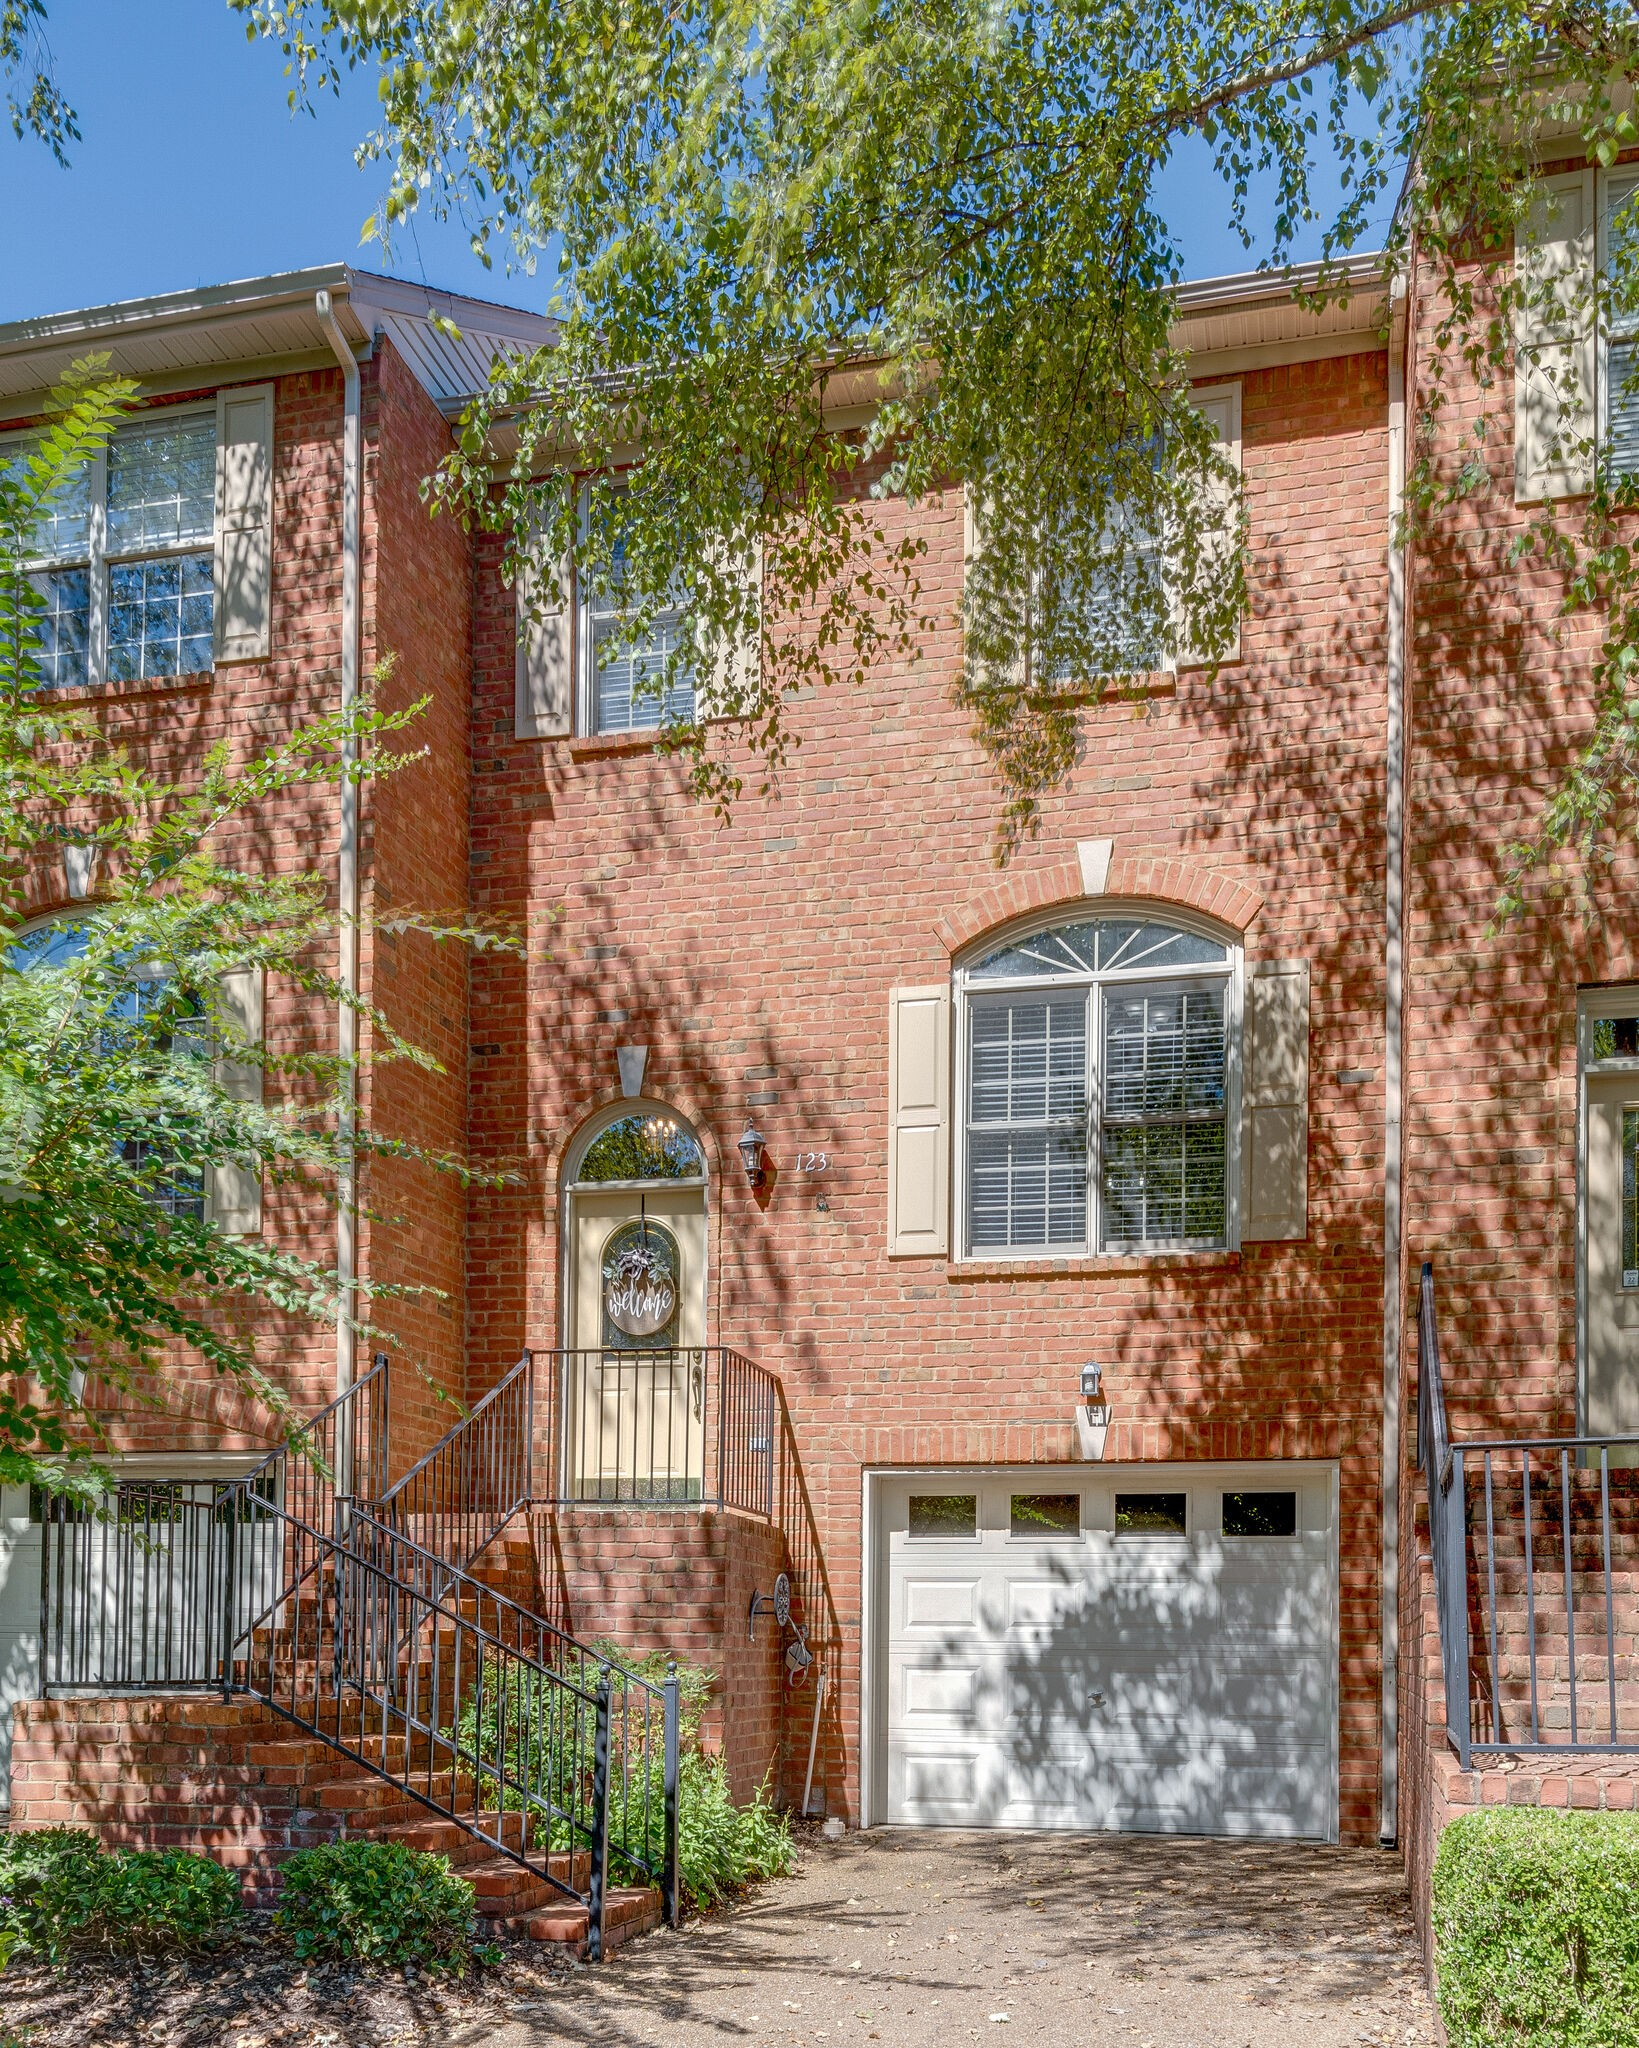 Beautiful Brentwood townhome! Amazing location- Less than 1.5 miles to 65, Target/shops/restaurants & convenient to Downtown Nashville & Franklin! Upgrades throughout include: flooring on main level, granite kitchen countertops, bathroom udates & more.  2 outdoor living spaces (patio and deck) that overlook the trees and feel very private/peaceful. One car garage is very oversized and has room for plenty of storage.  Double sided fireplace in living area/kitchen. Move-in Ready!